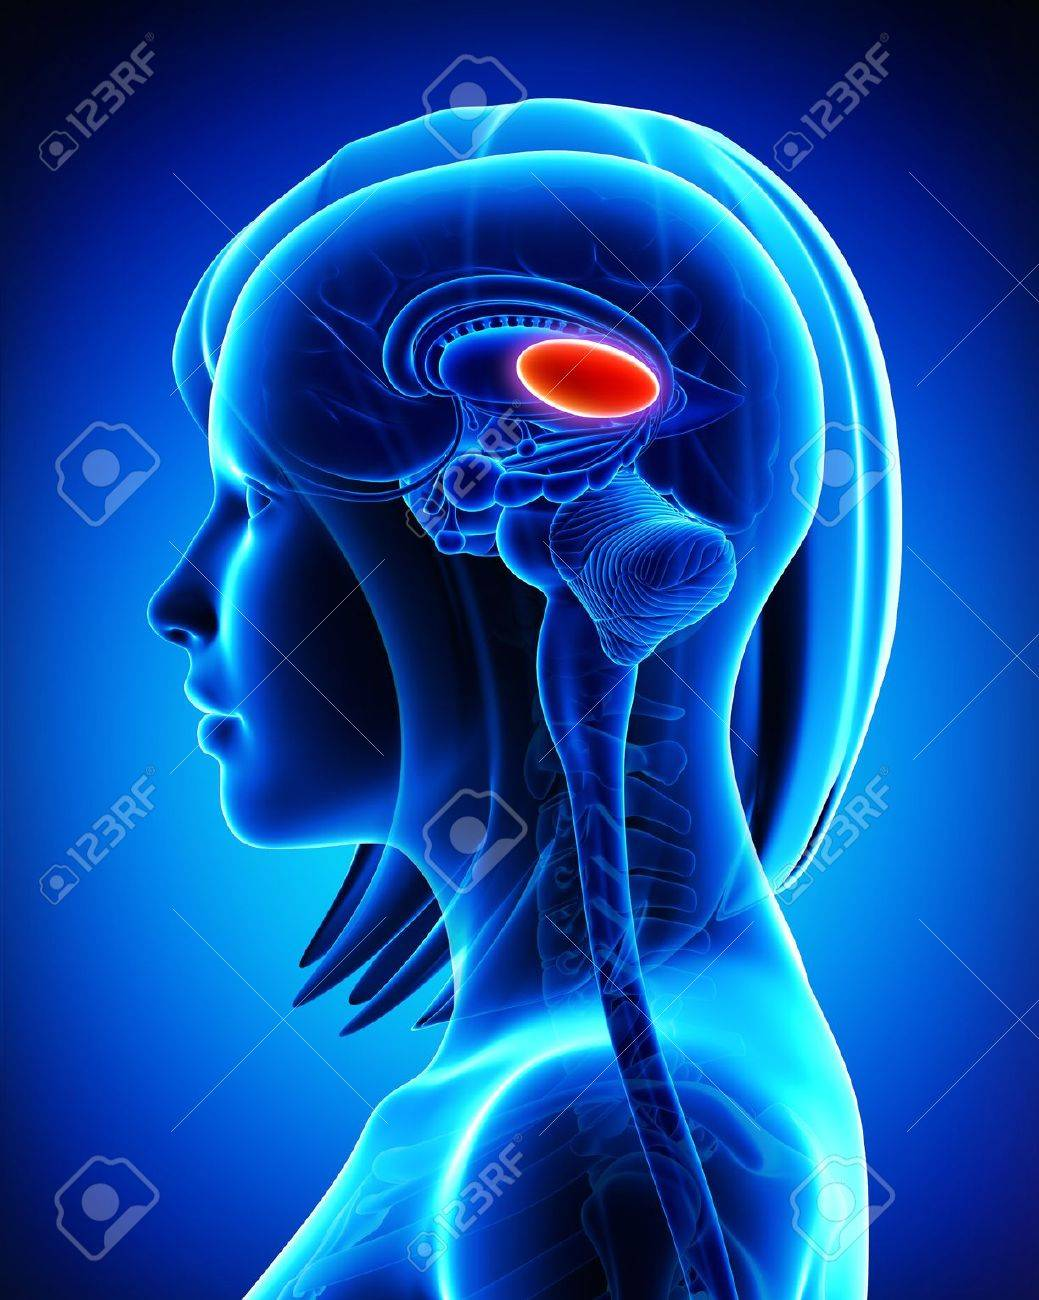 Anatomy Of Brain S Thalamus, L- Cross Section Stock Photo, Picture ...